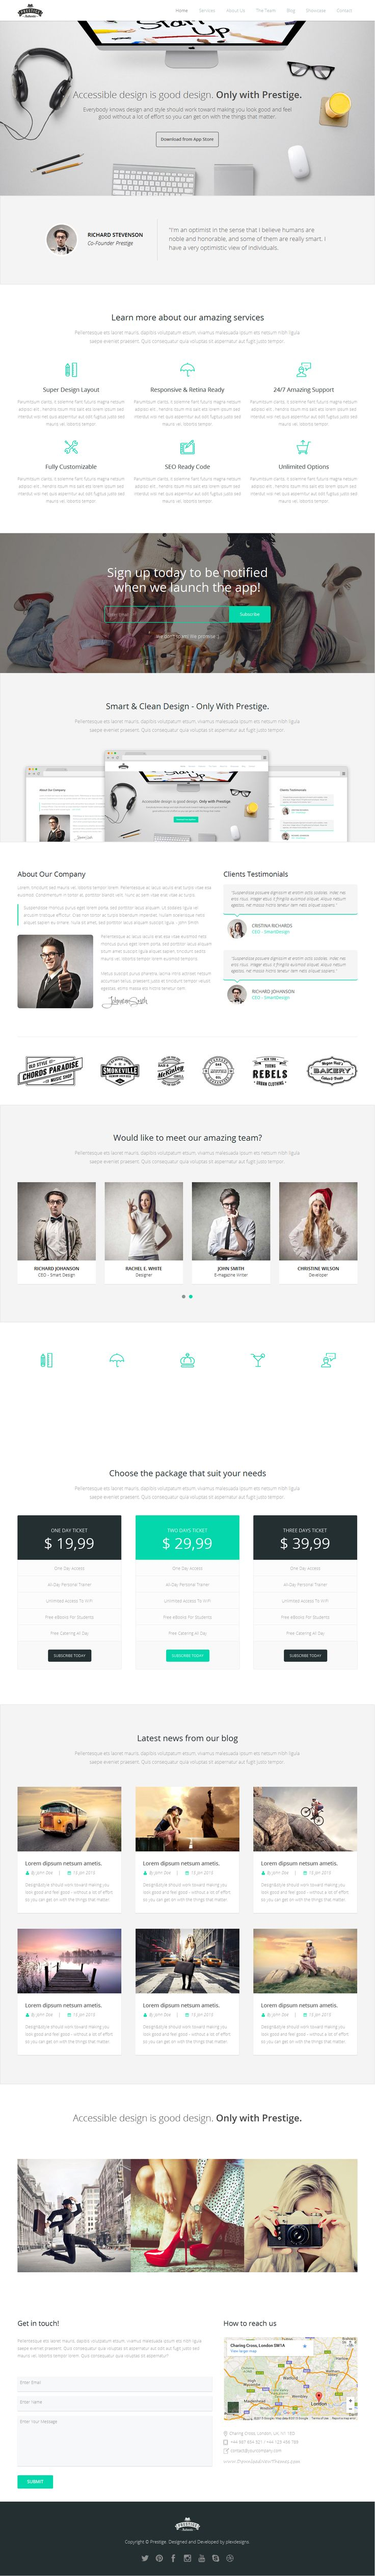 Prestige is a clean and modern #Muse template, very easy to customize according to your needs. This #landingpage #template can be used to promote web apps, mobile apps and all kind of marketing and startup websites. Quick and easy to setup.